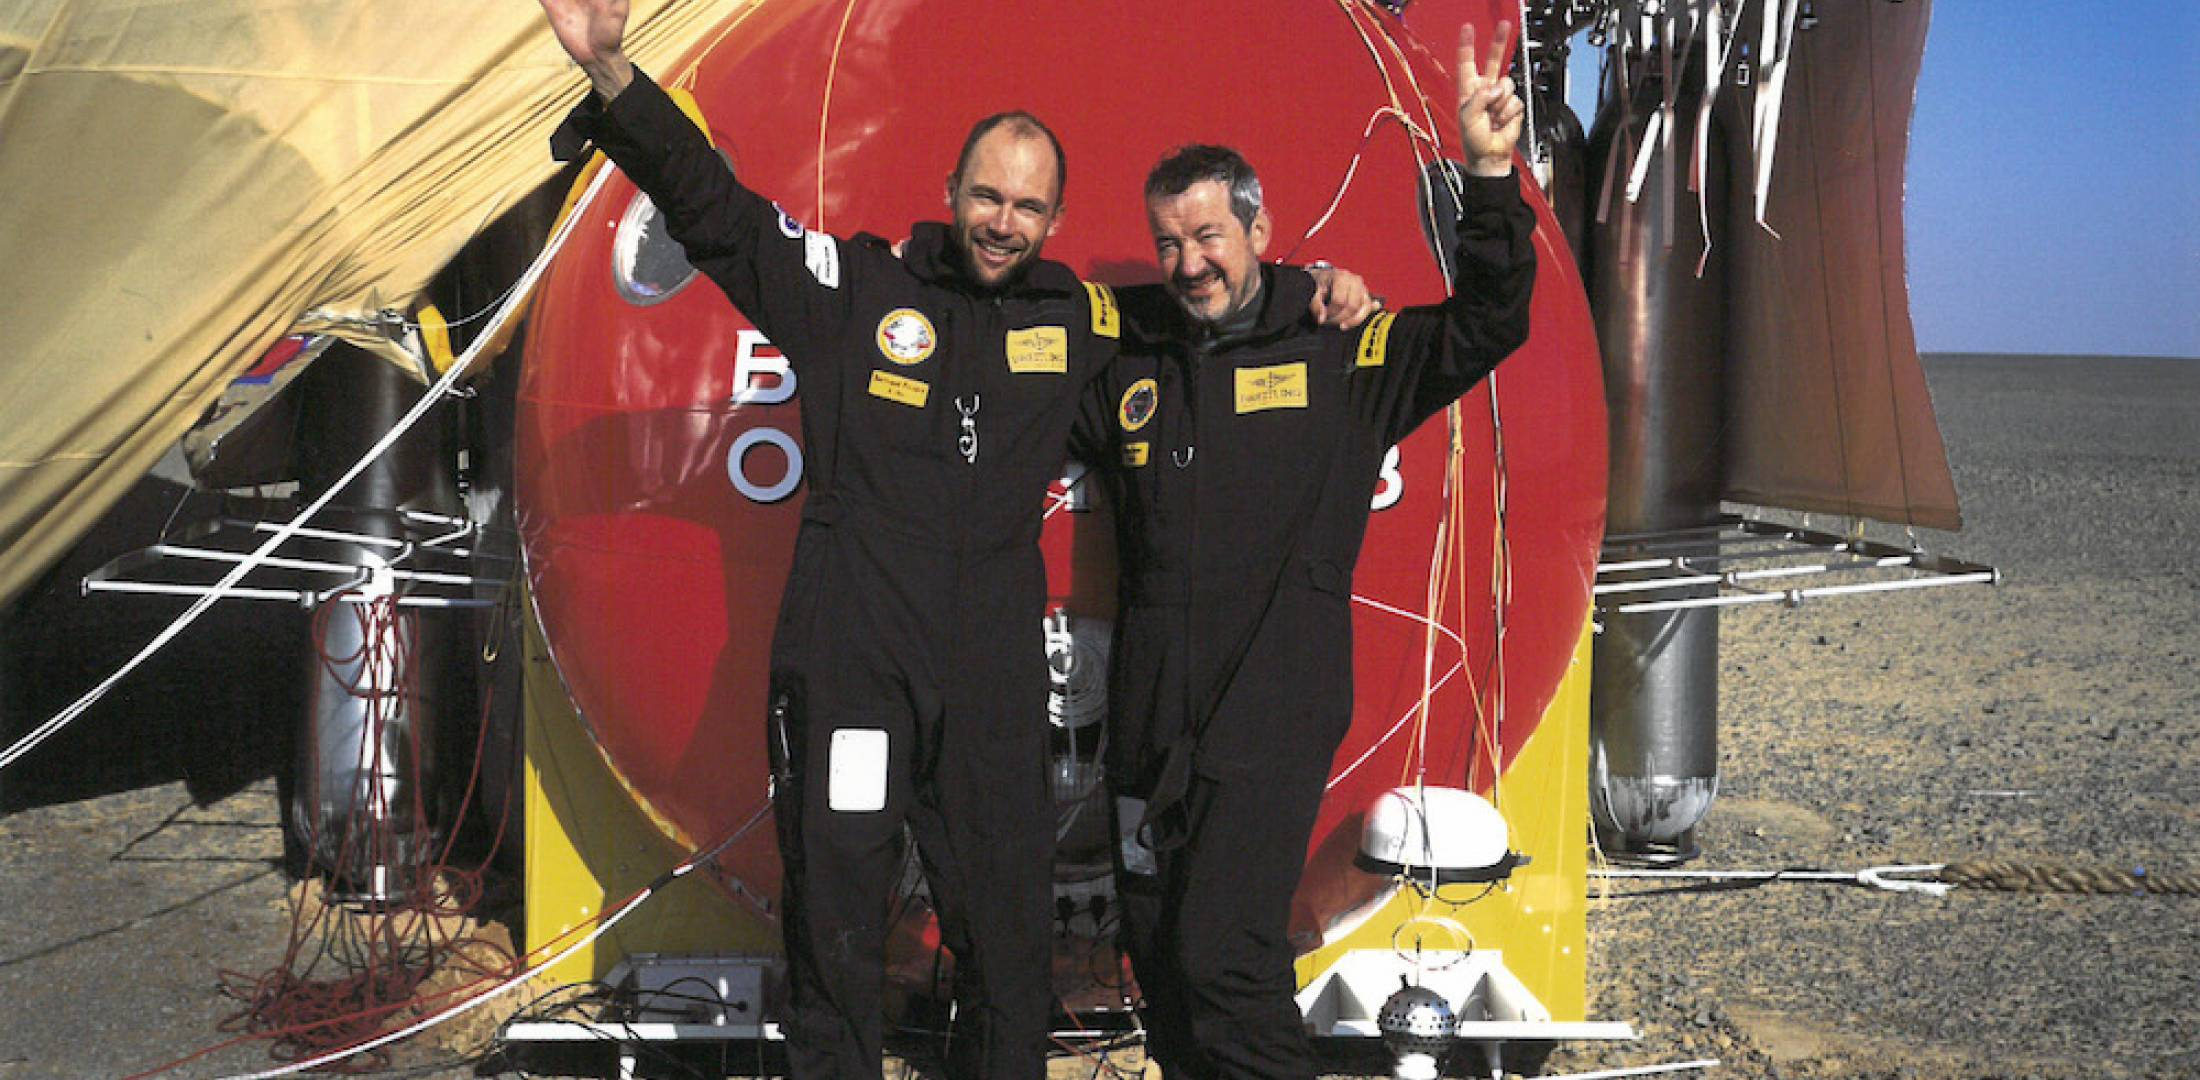 On March 21 it was 20 years since Breitling Orbiter 3 landed.